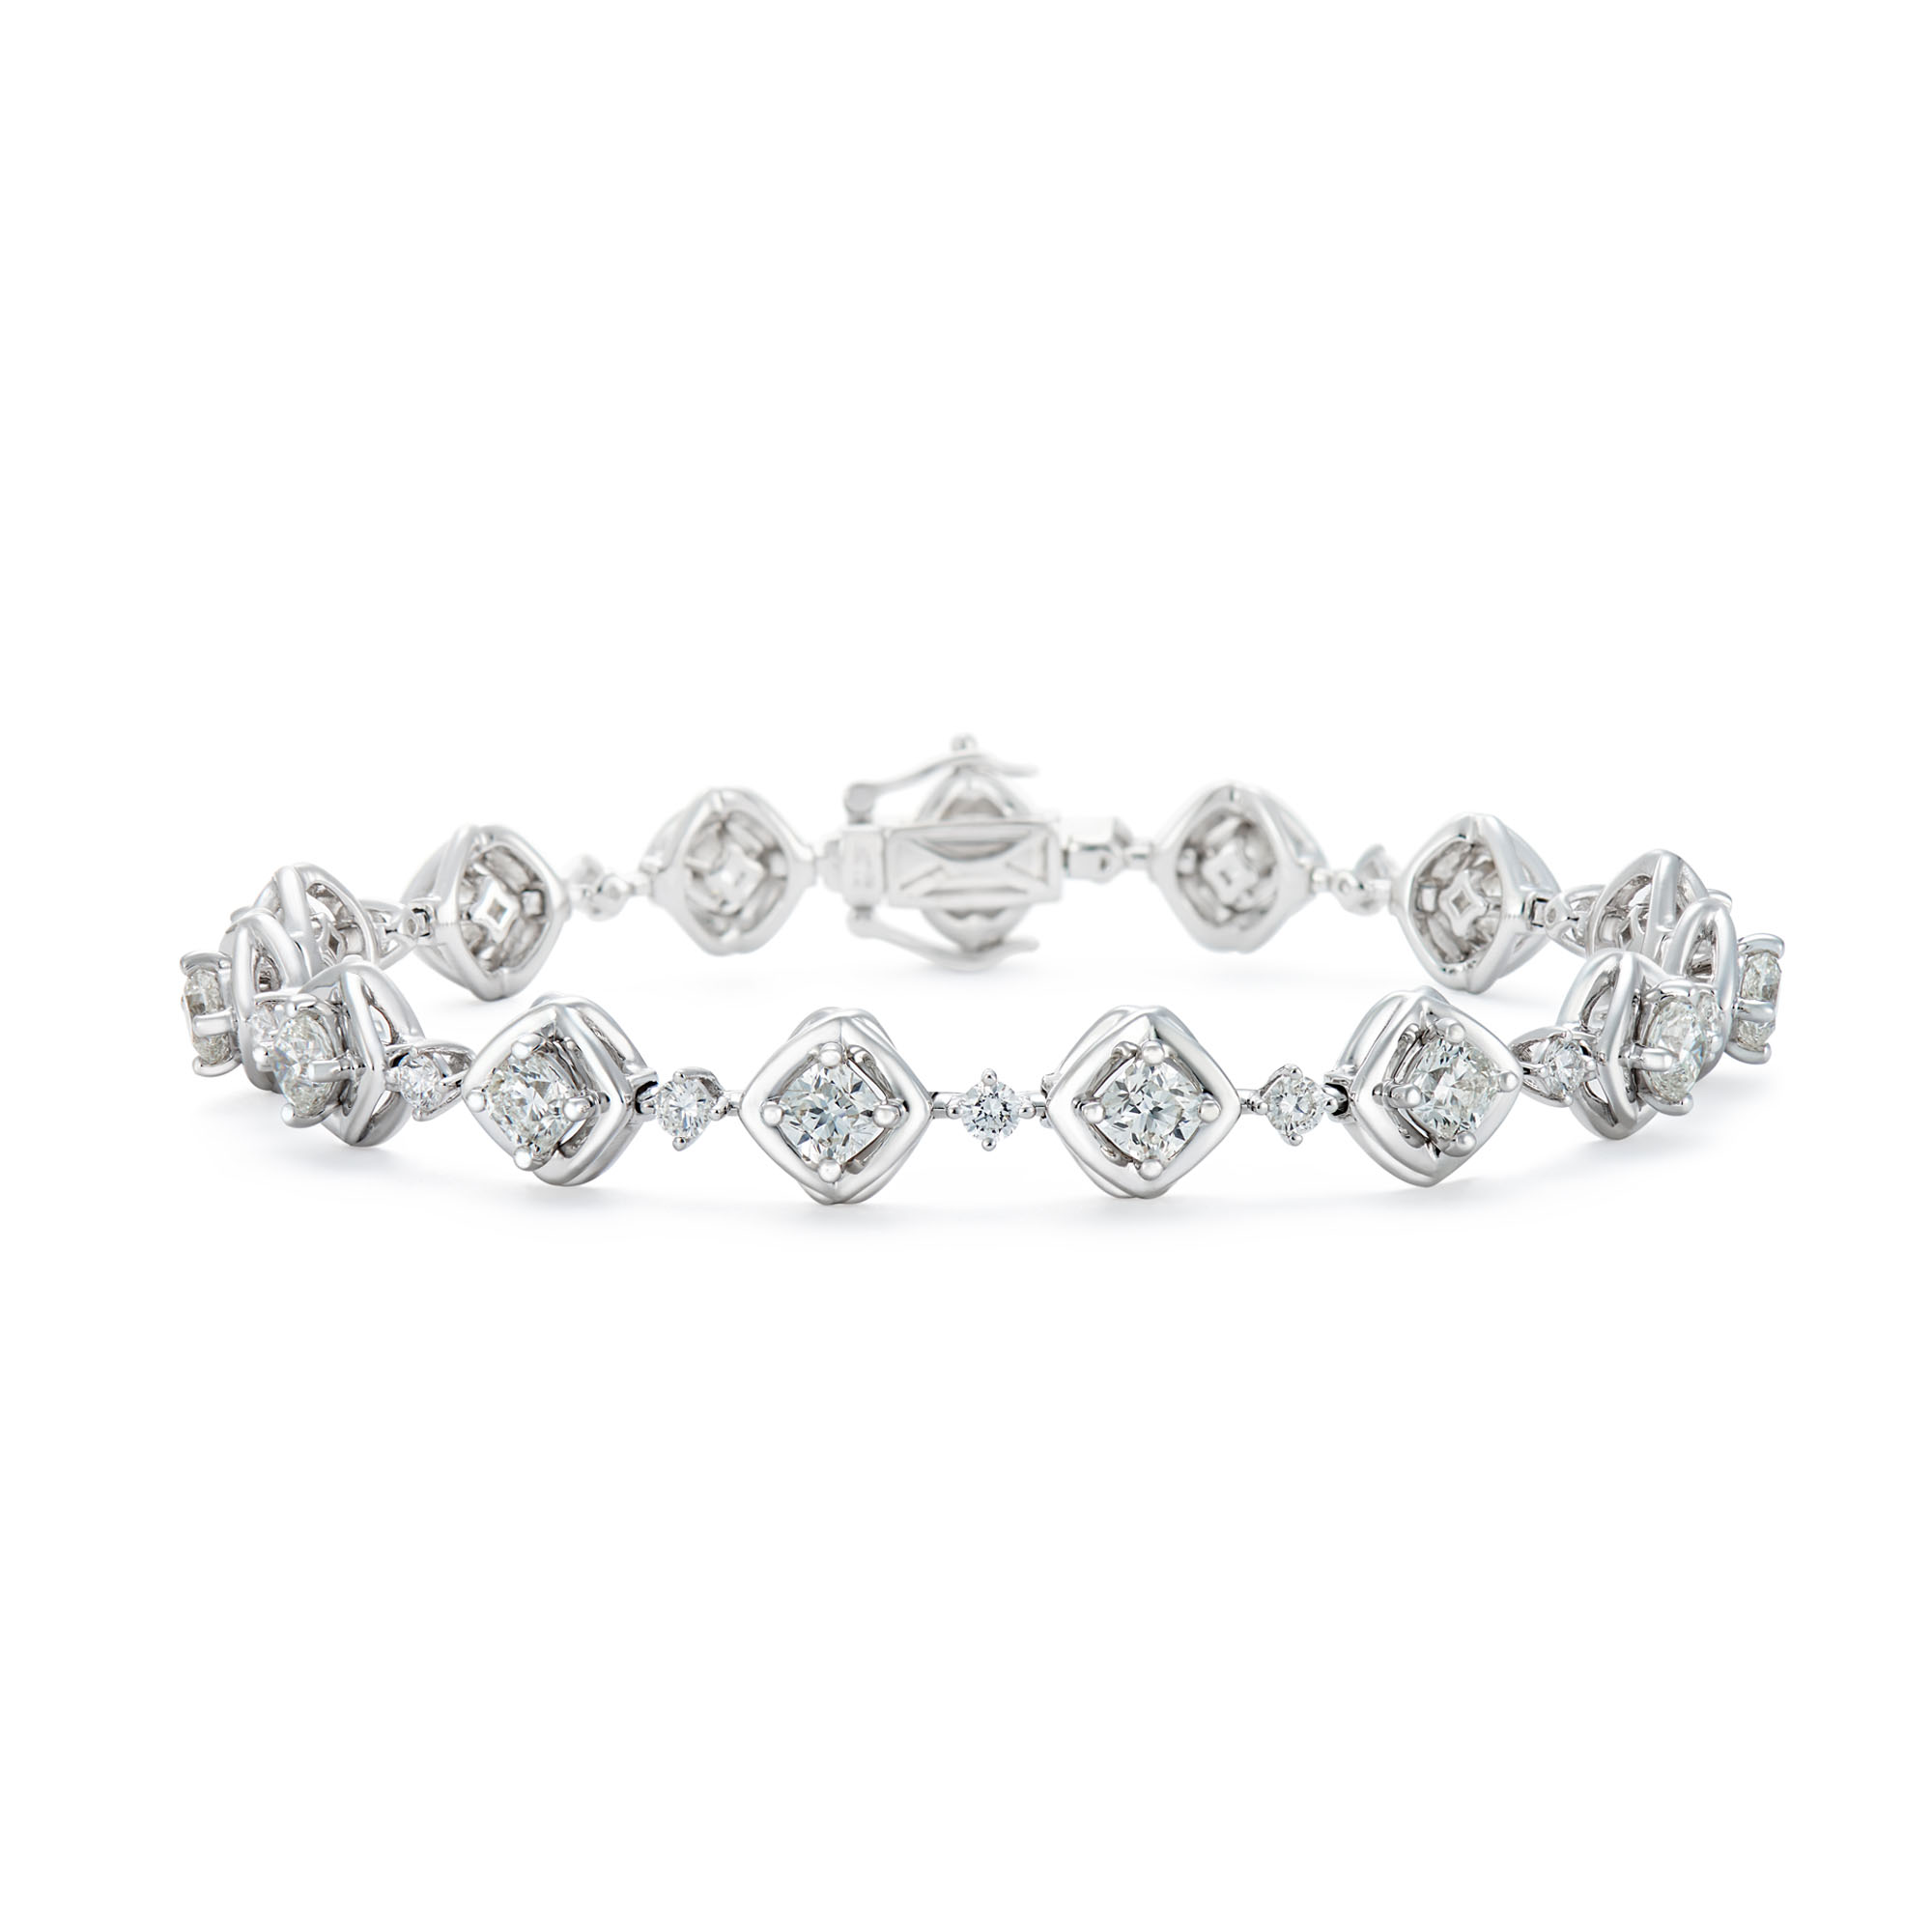 Bliss for Forevermark Diamond Bracelet